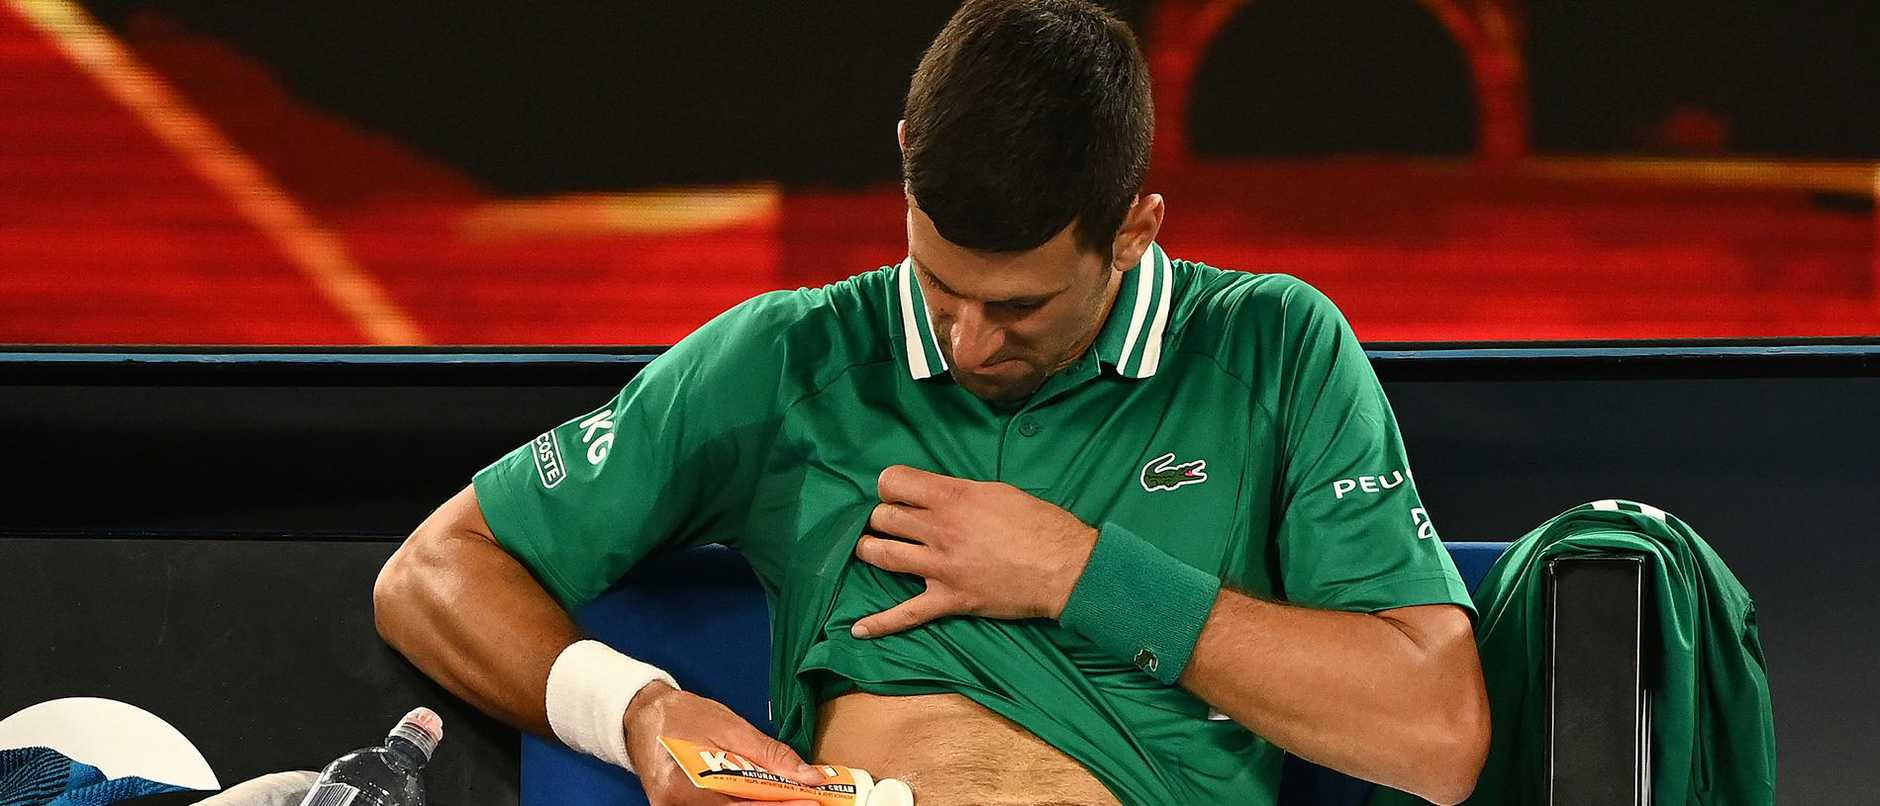 Australian Open: Two-week quarantine period catching up with tennis players